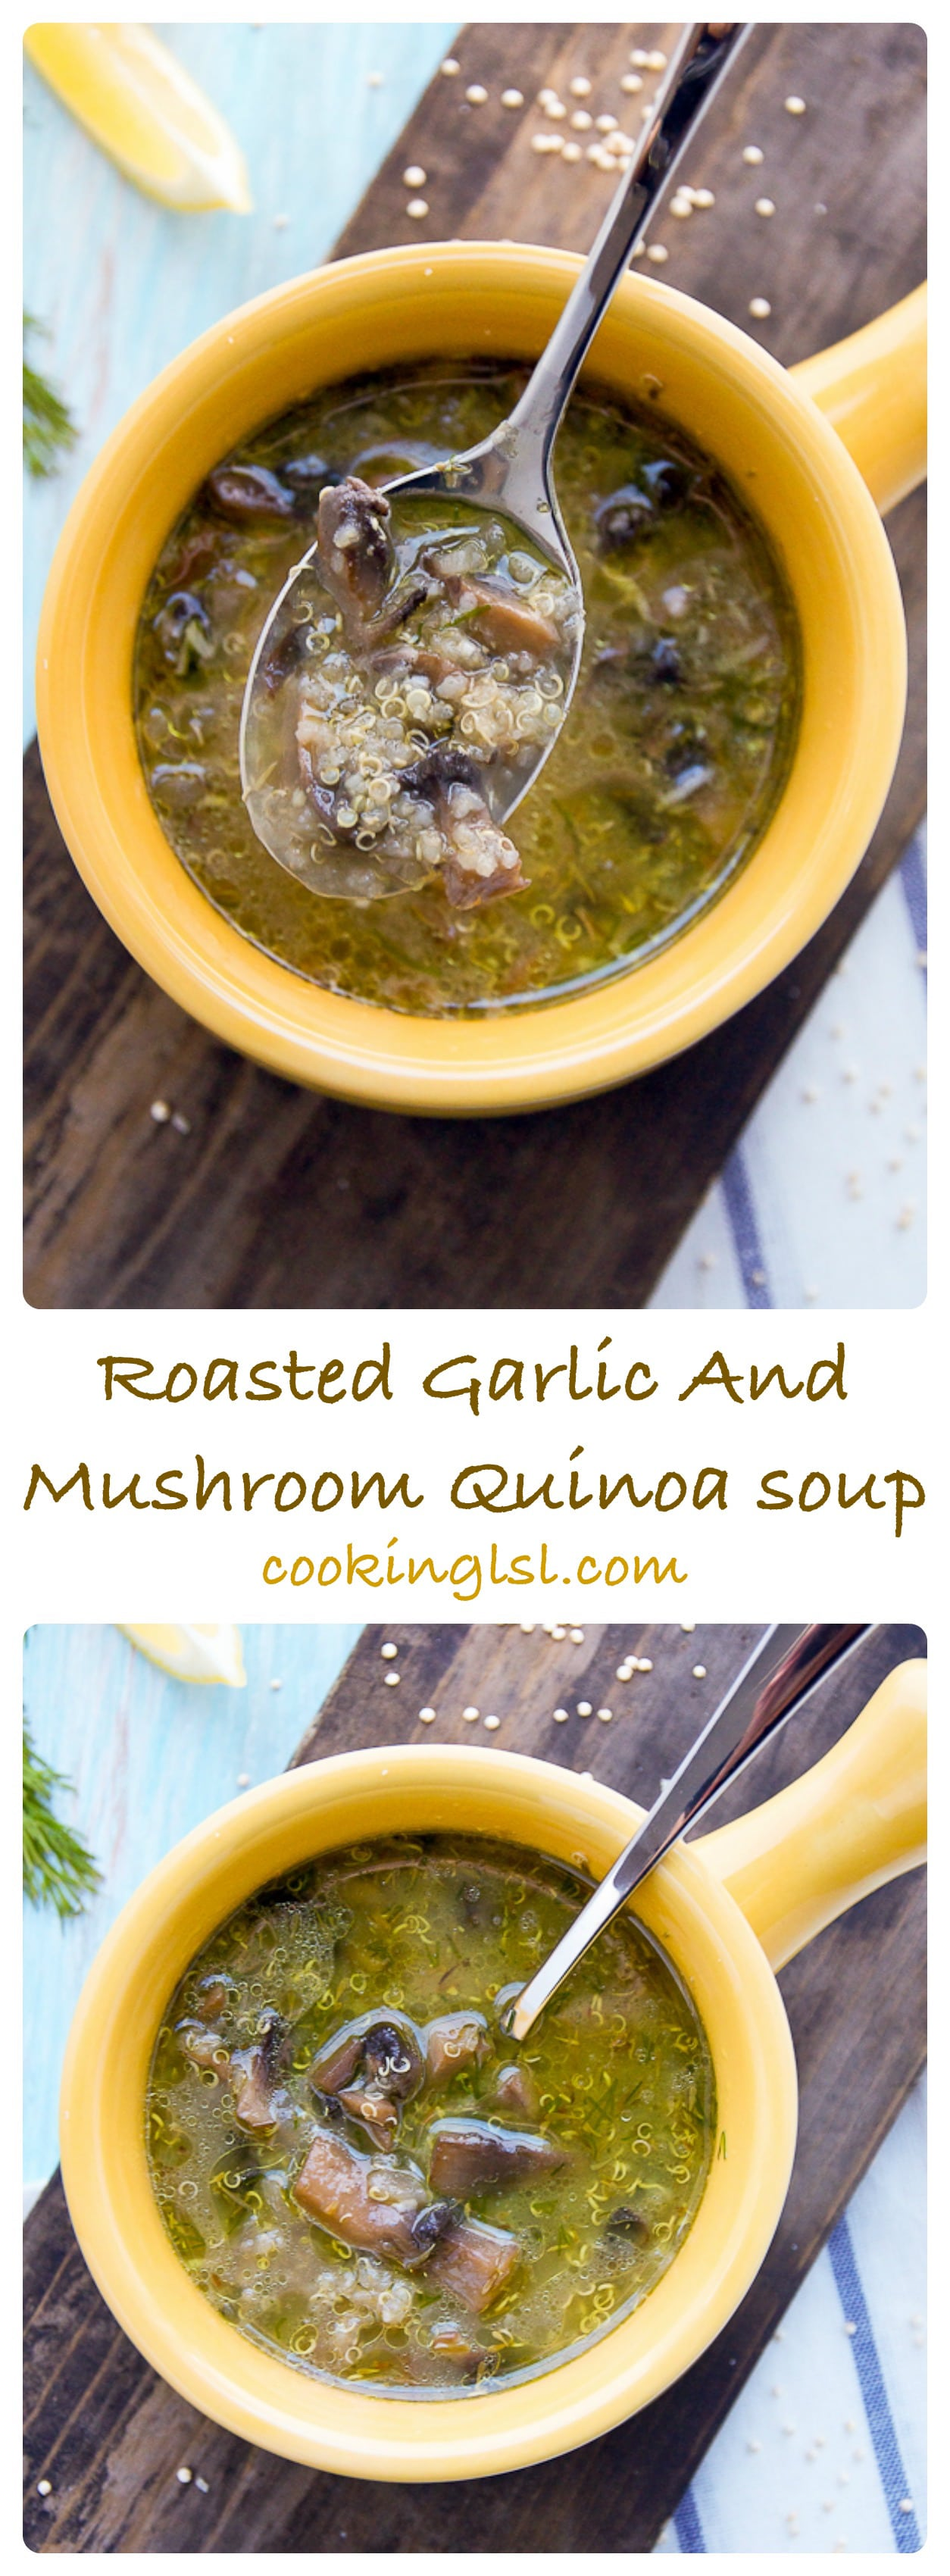 Roasted-garlic-mushroom-quinoa-soup